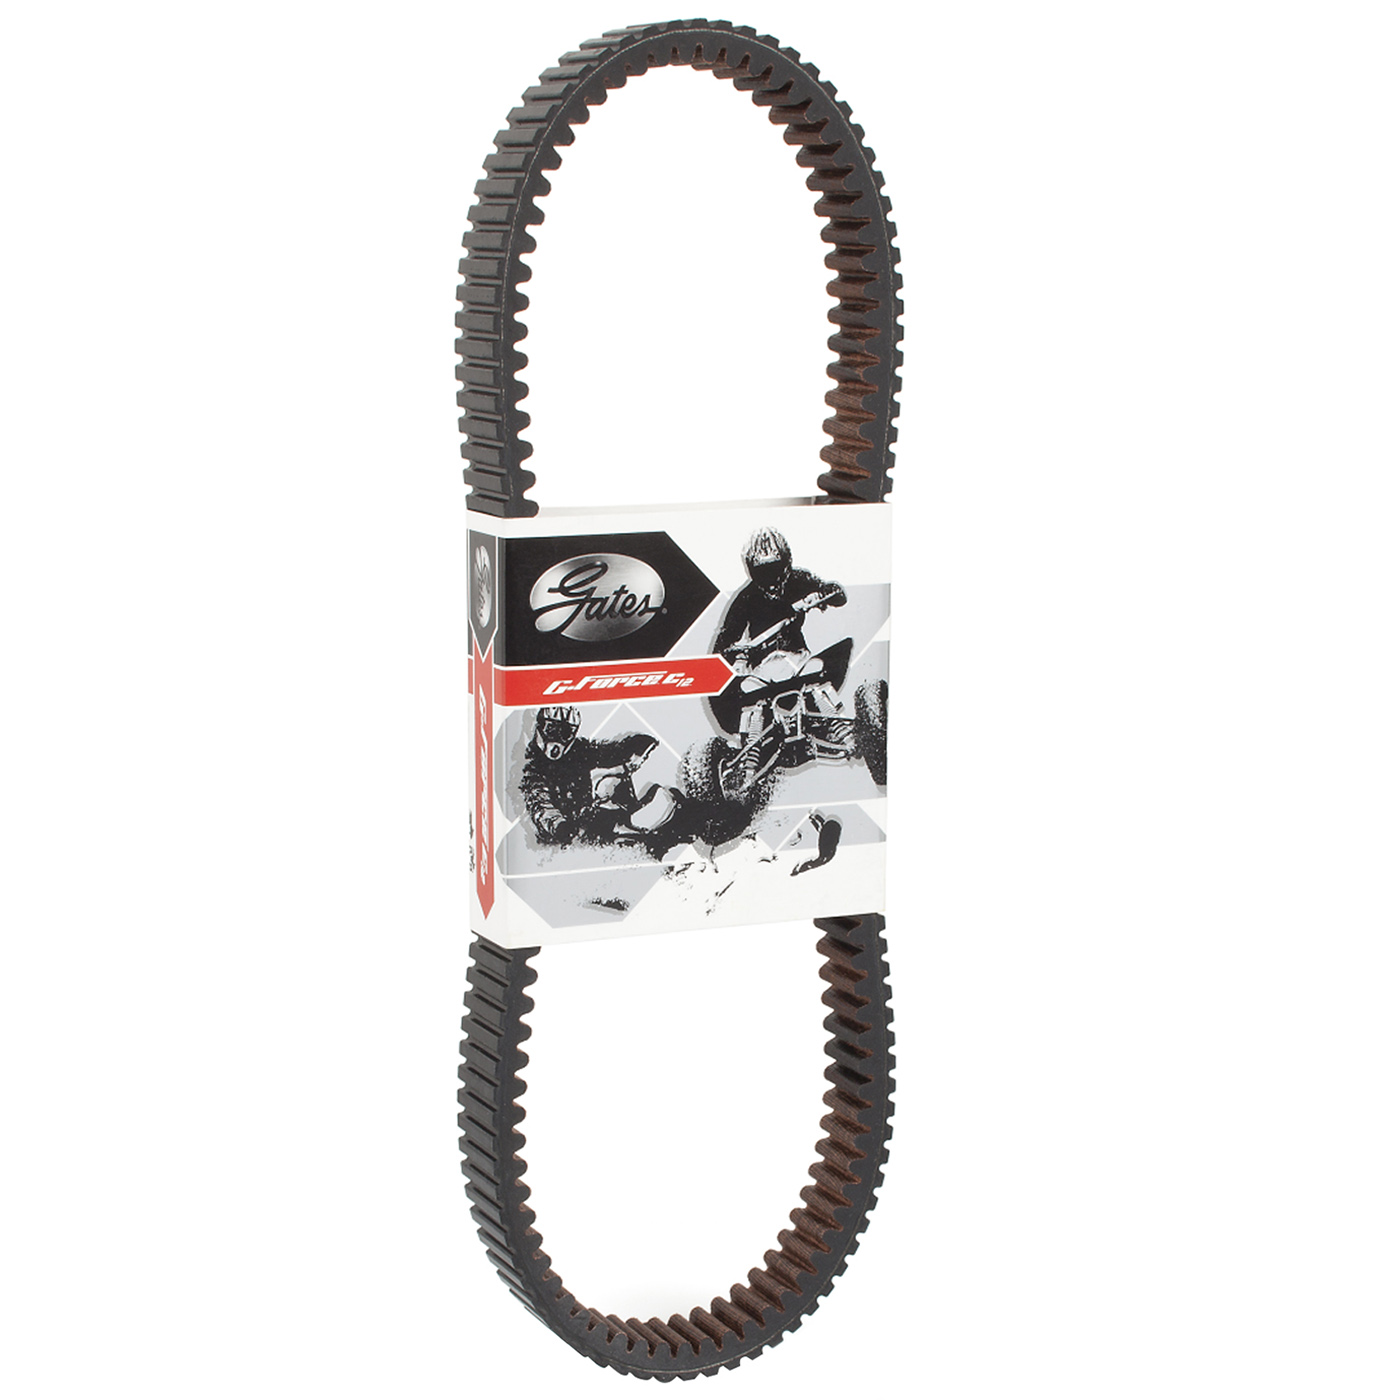 DRIVE BELT FITS Bombardier//Can-Am 715900024 420280280